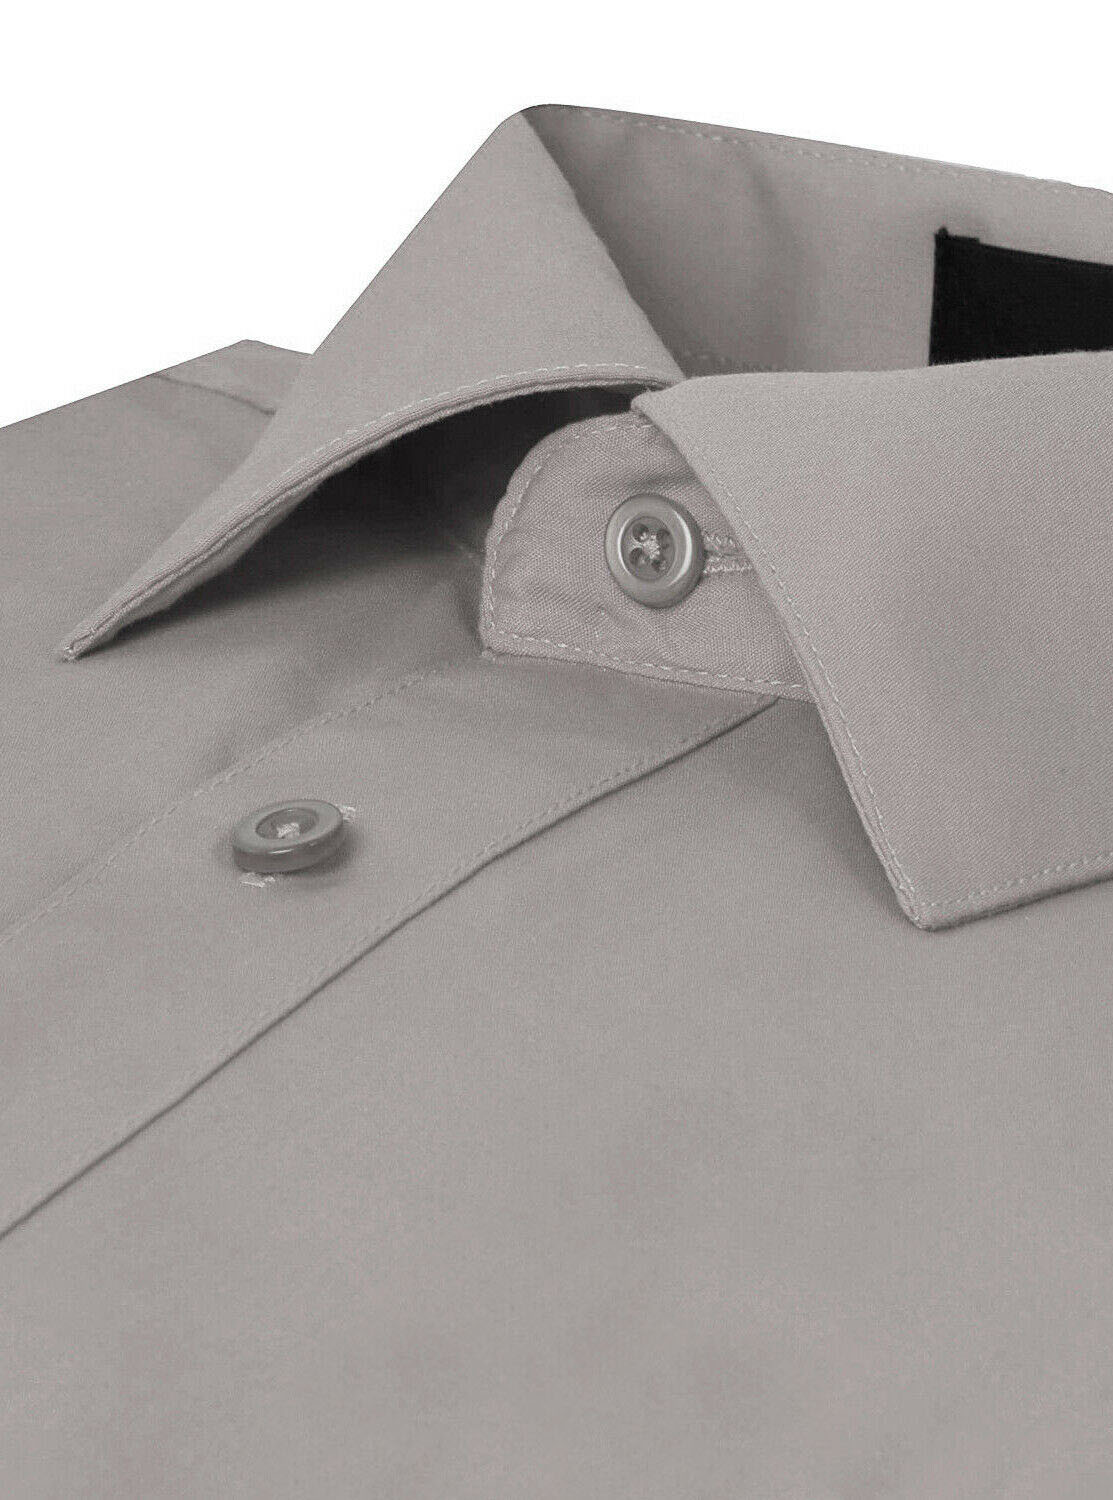 Omega-Italy-Men-039-s-Premium-Slim-Fit-Button-Up-Long-Sleeve-Solid-Color-Dress-Shirt thumbnail 75